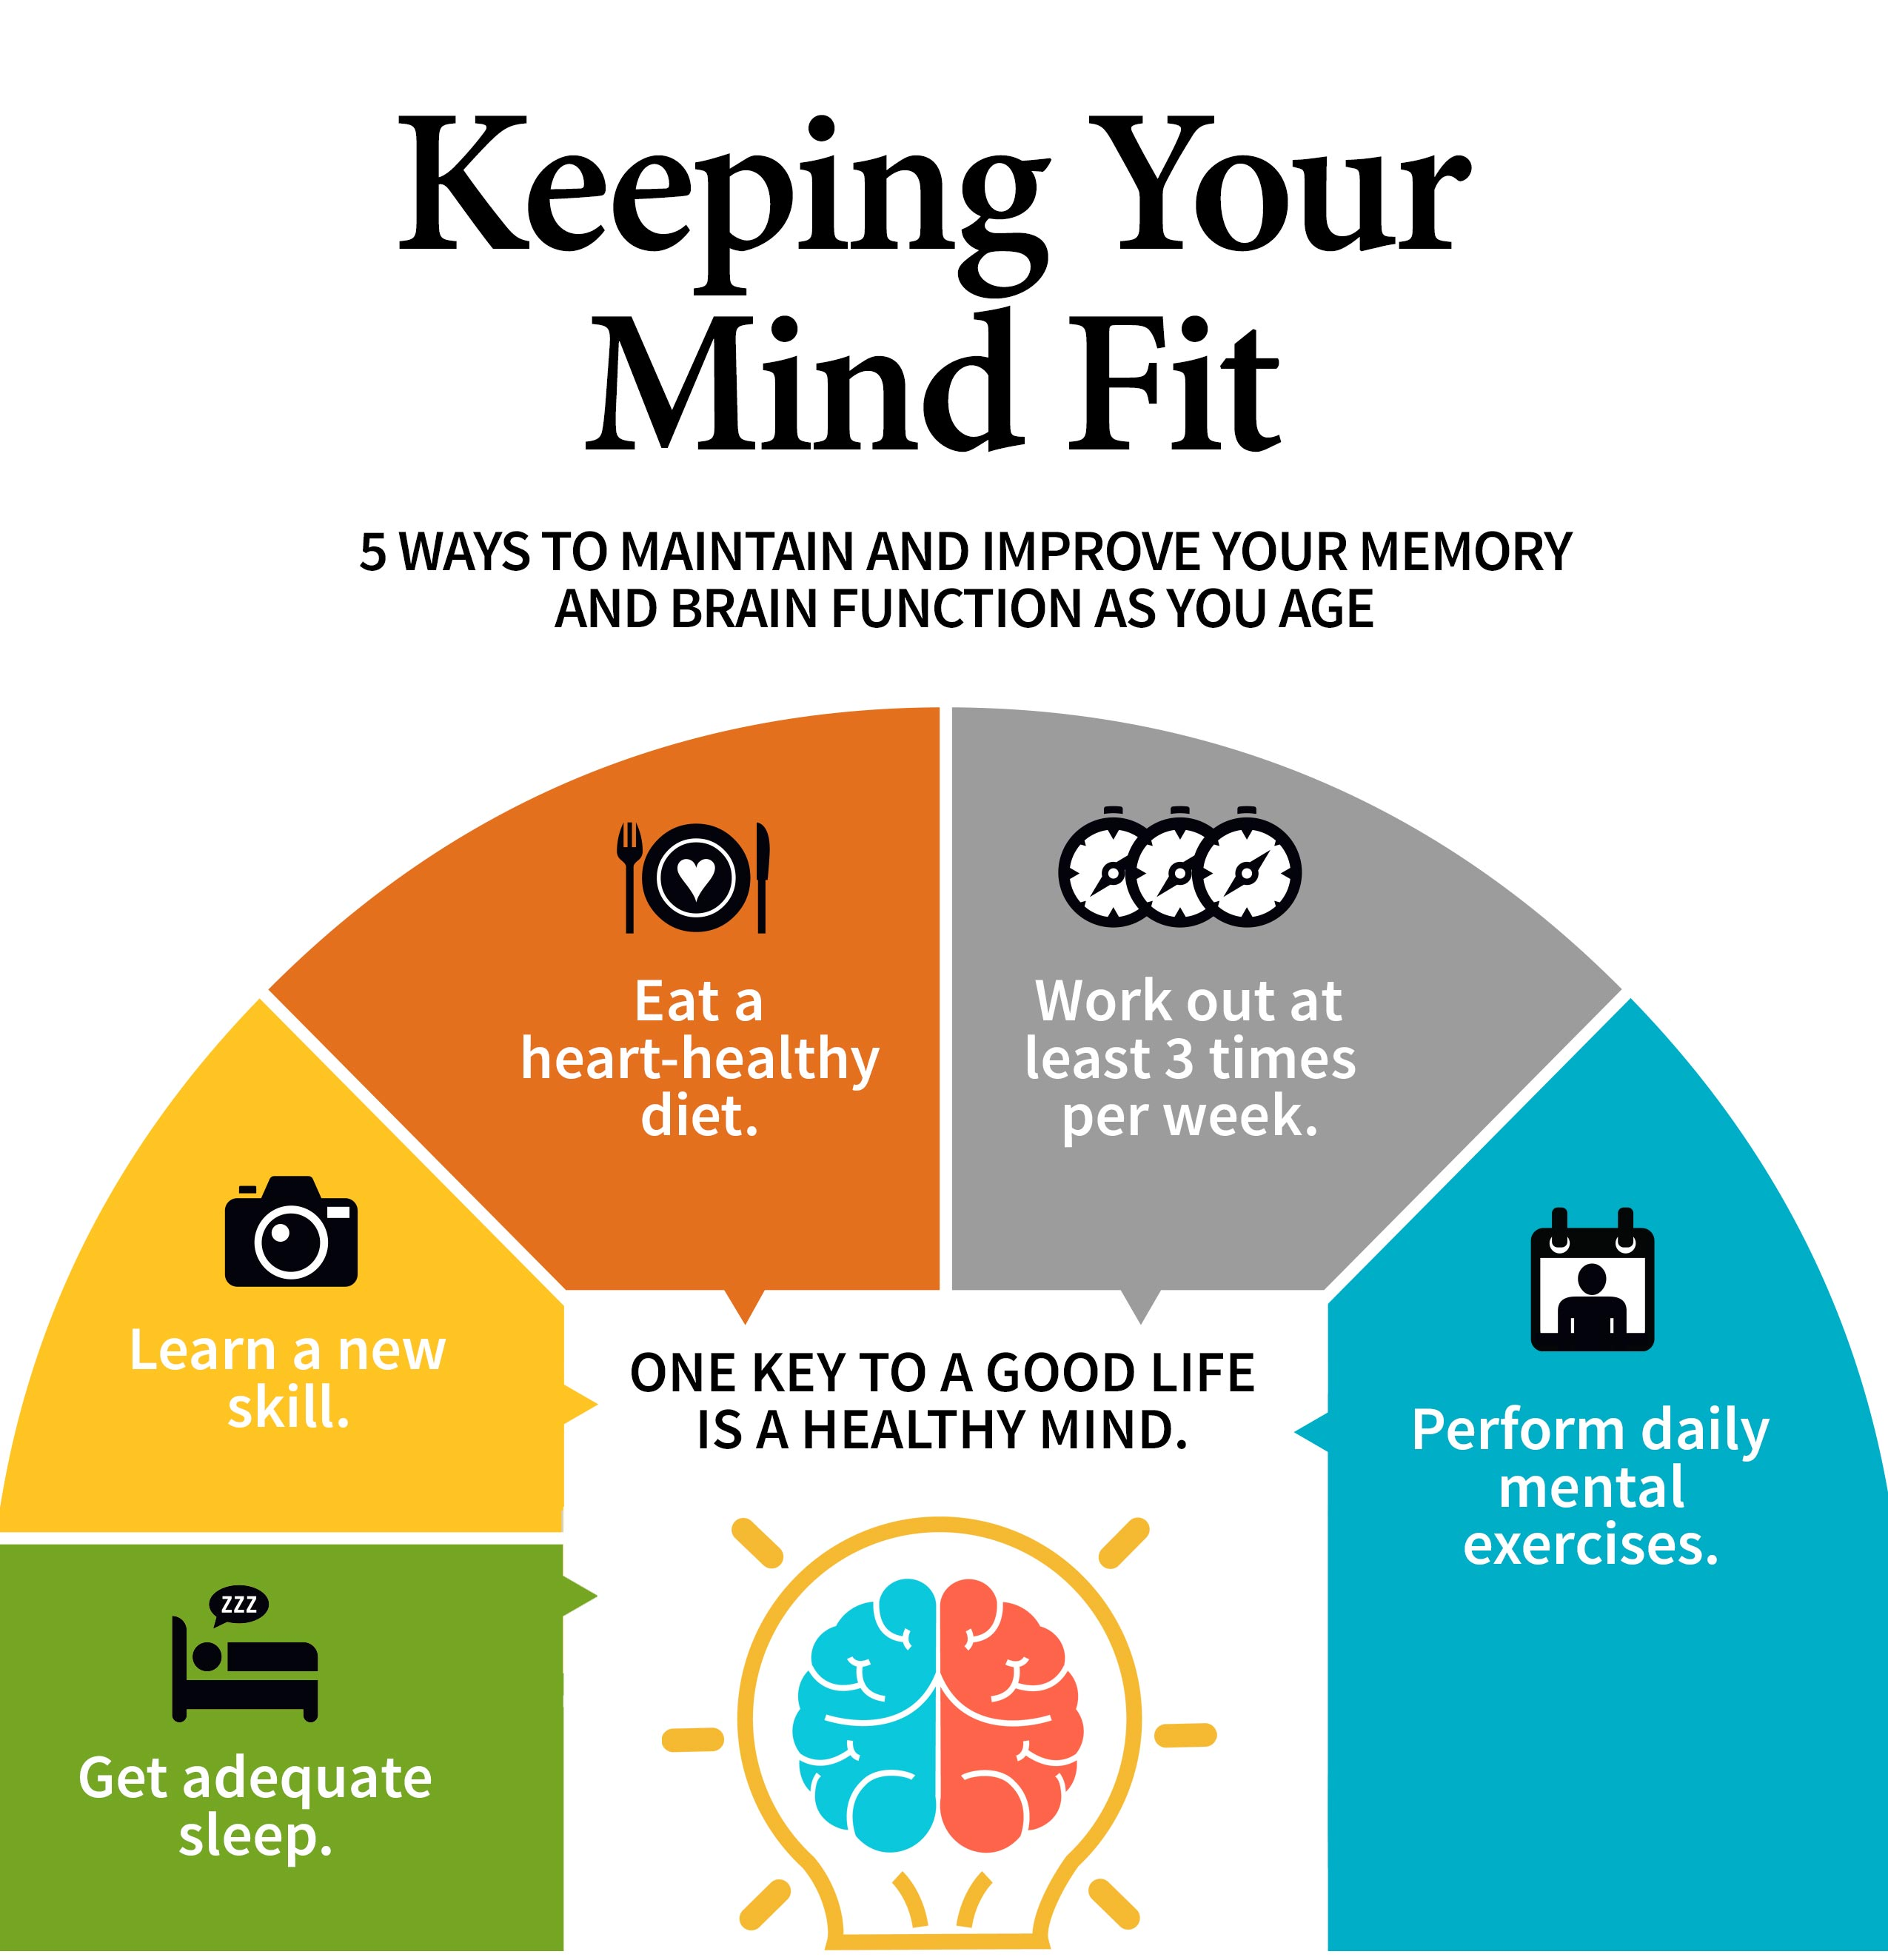 Keeping Your Mind Fit: Improving Memory as you Age | Regions